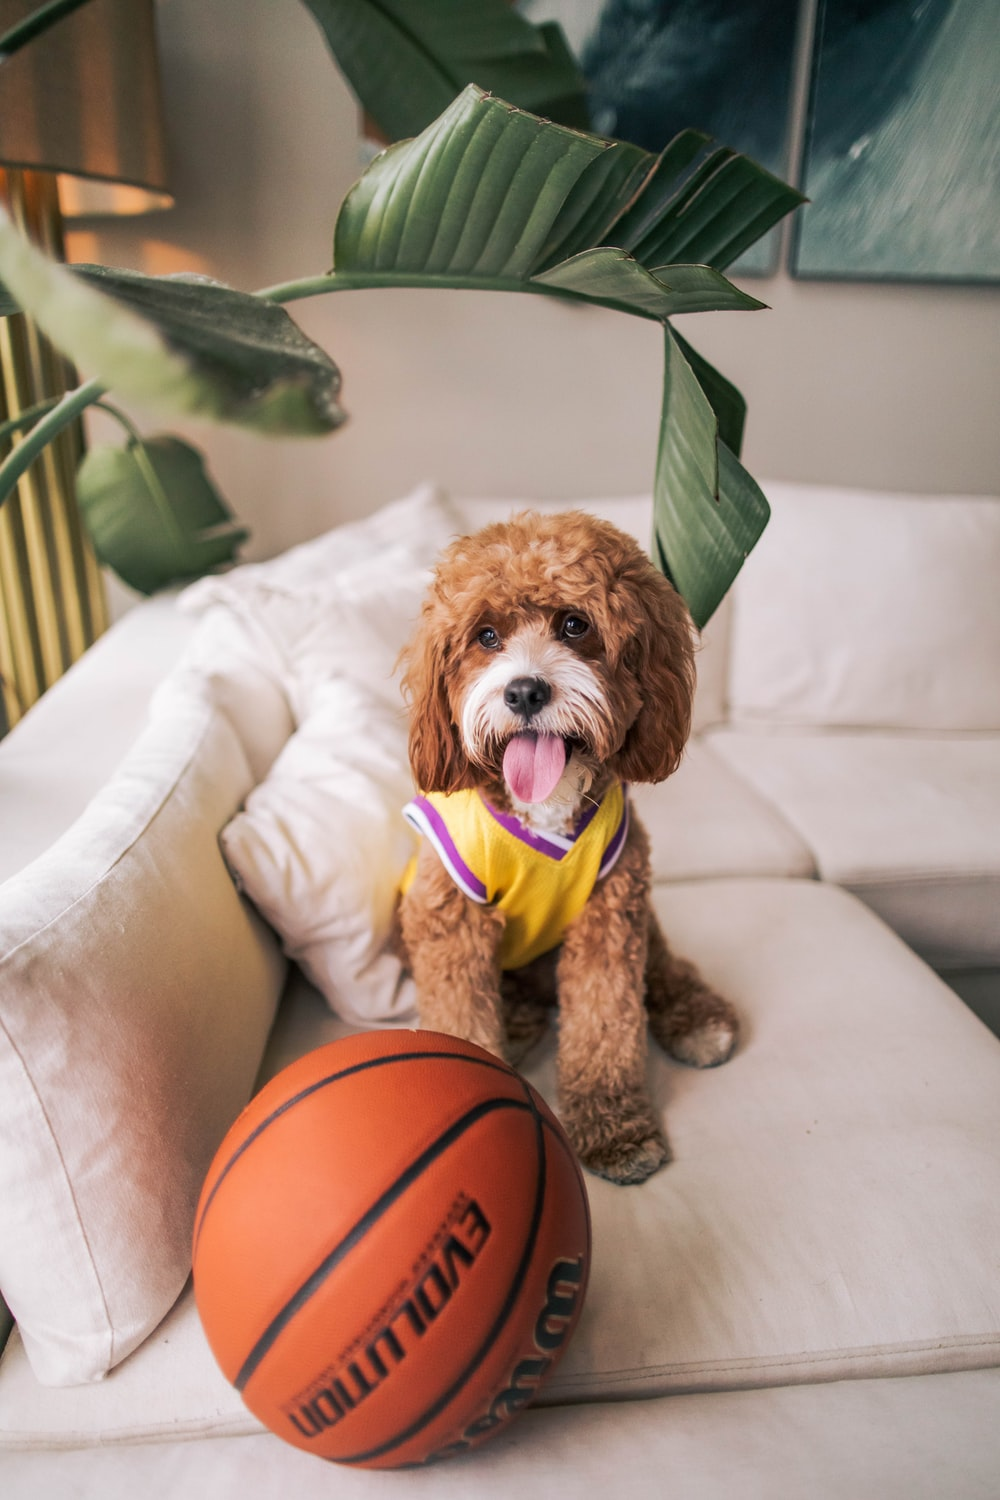 Lakers Jersey Pictures | Download Free Images on Unsplash